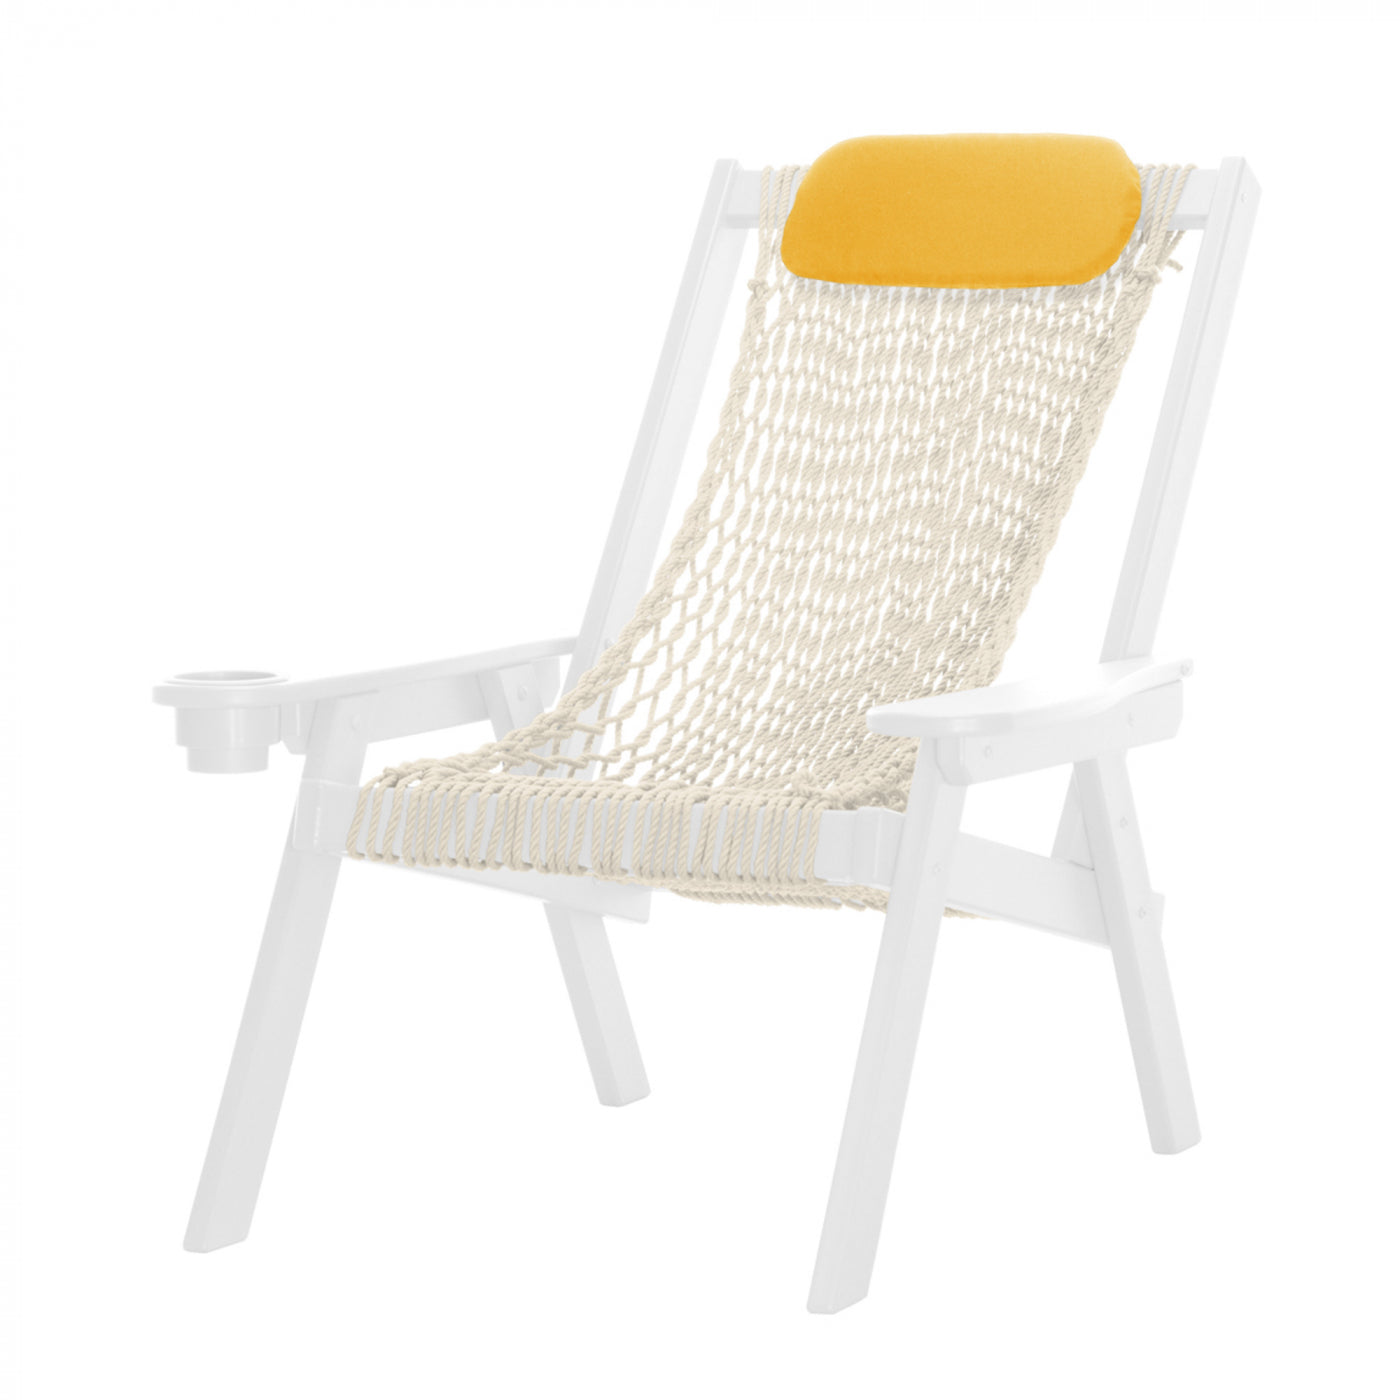 COASTAL DURACORD® ROPE CHAIR